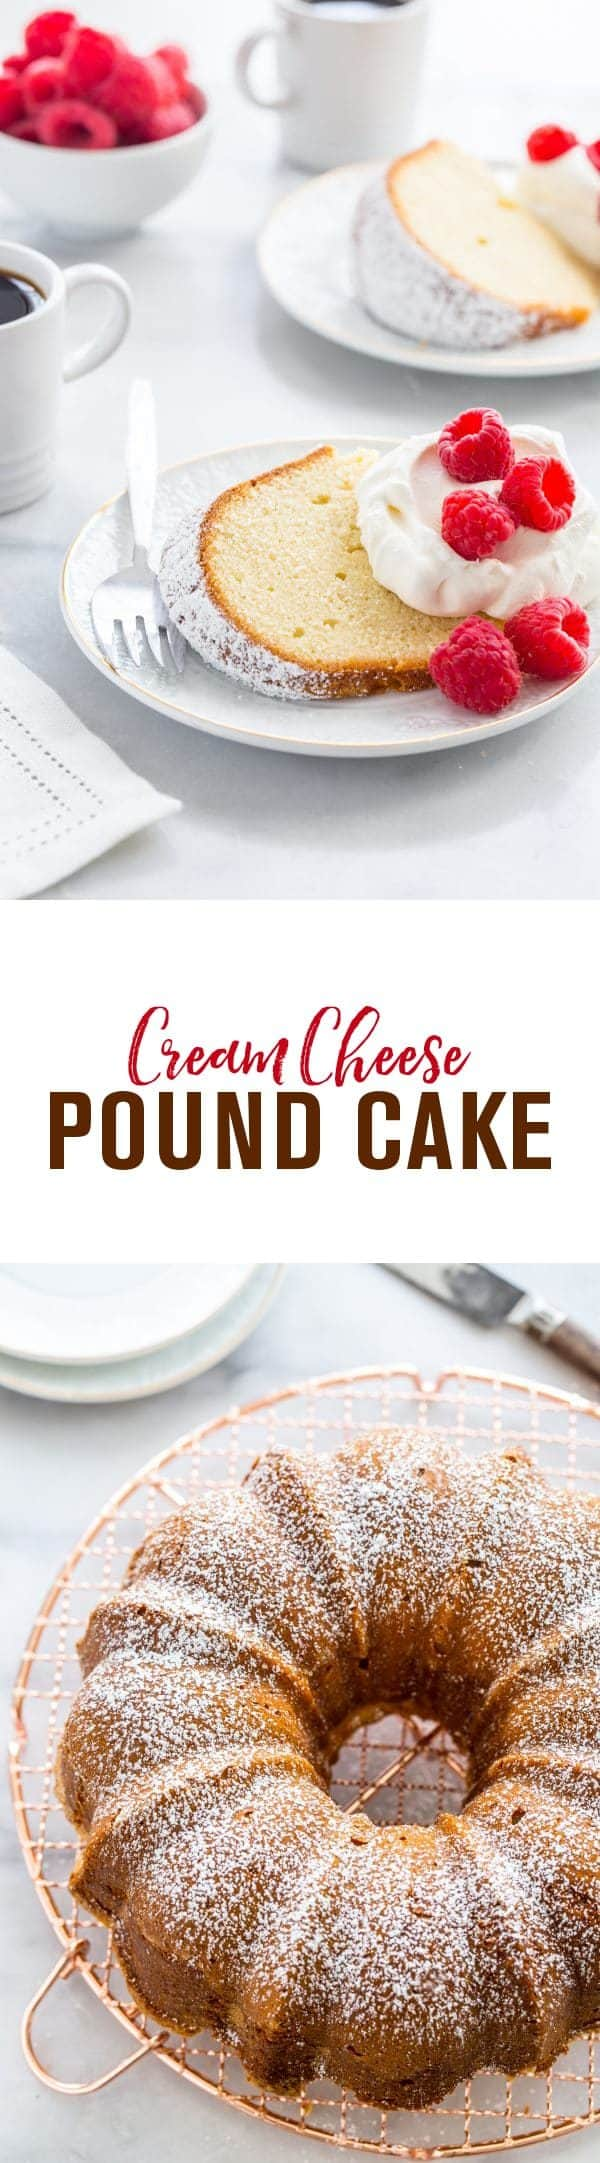 Cream Cheese Pound Cake is one delicious way to treat yourself to dessert. Whip it up all year long!